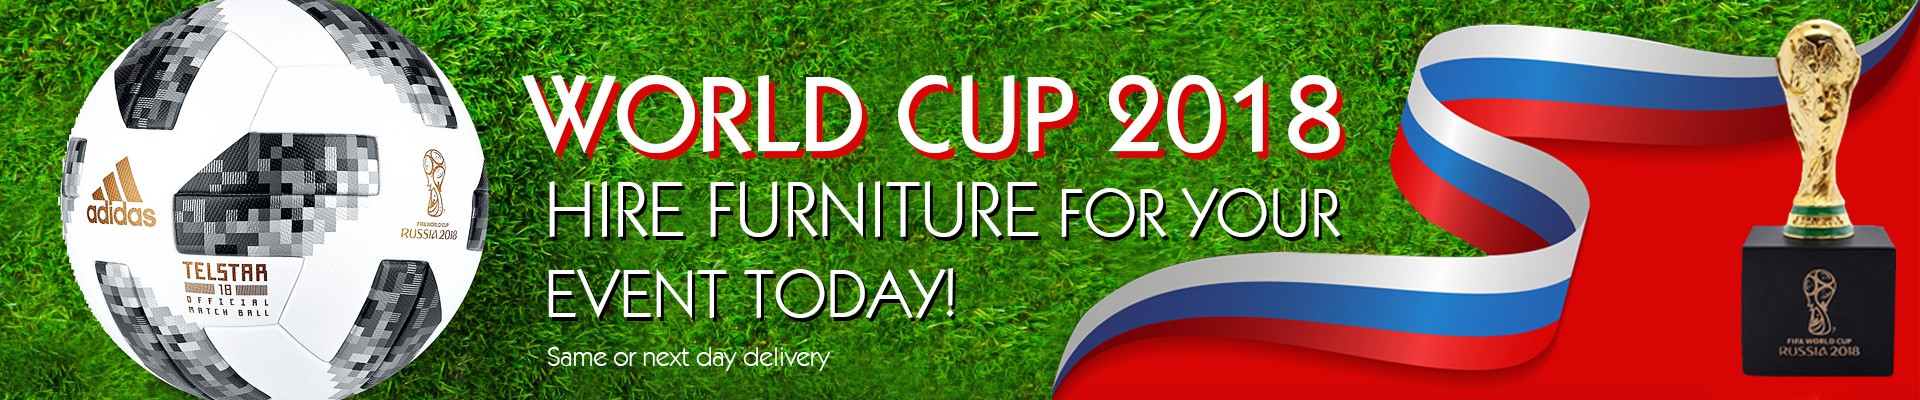 Furniture Rental for the World Cup